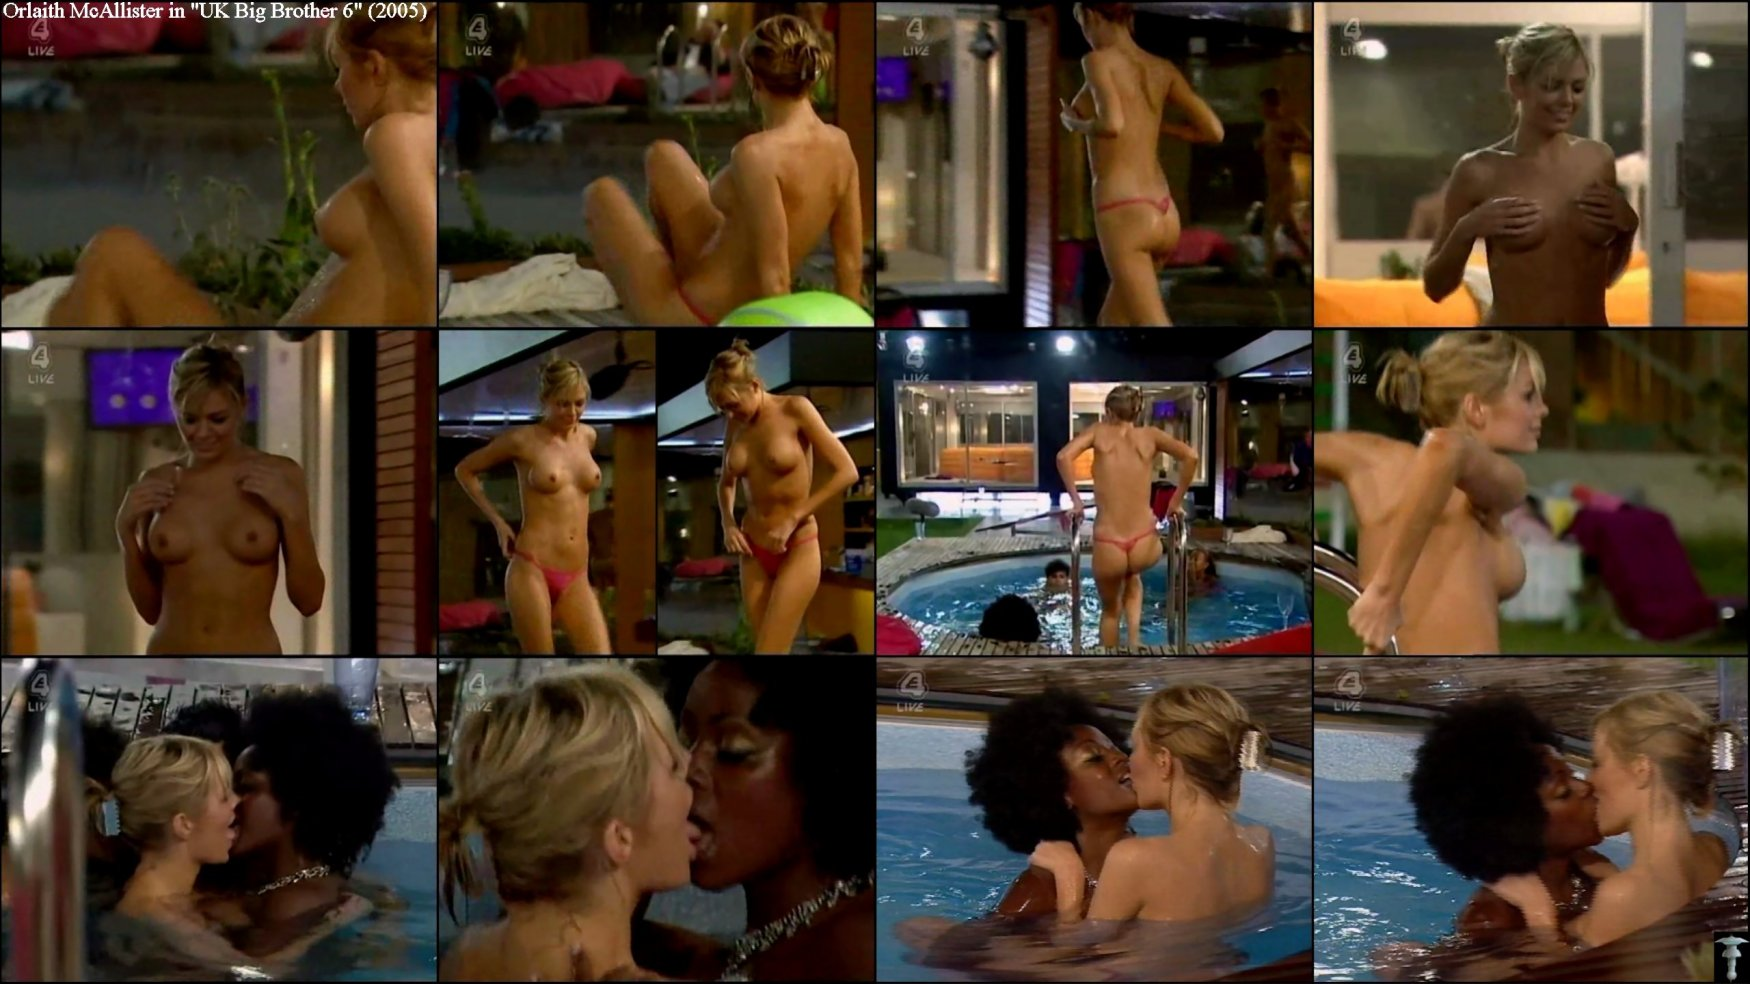 Striptease 3: bandes Jasmine totalement nu Big Brother